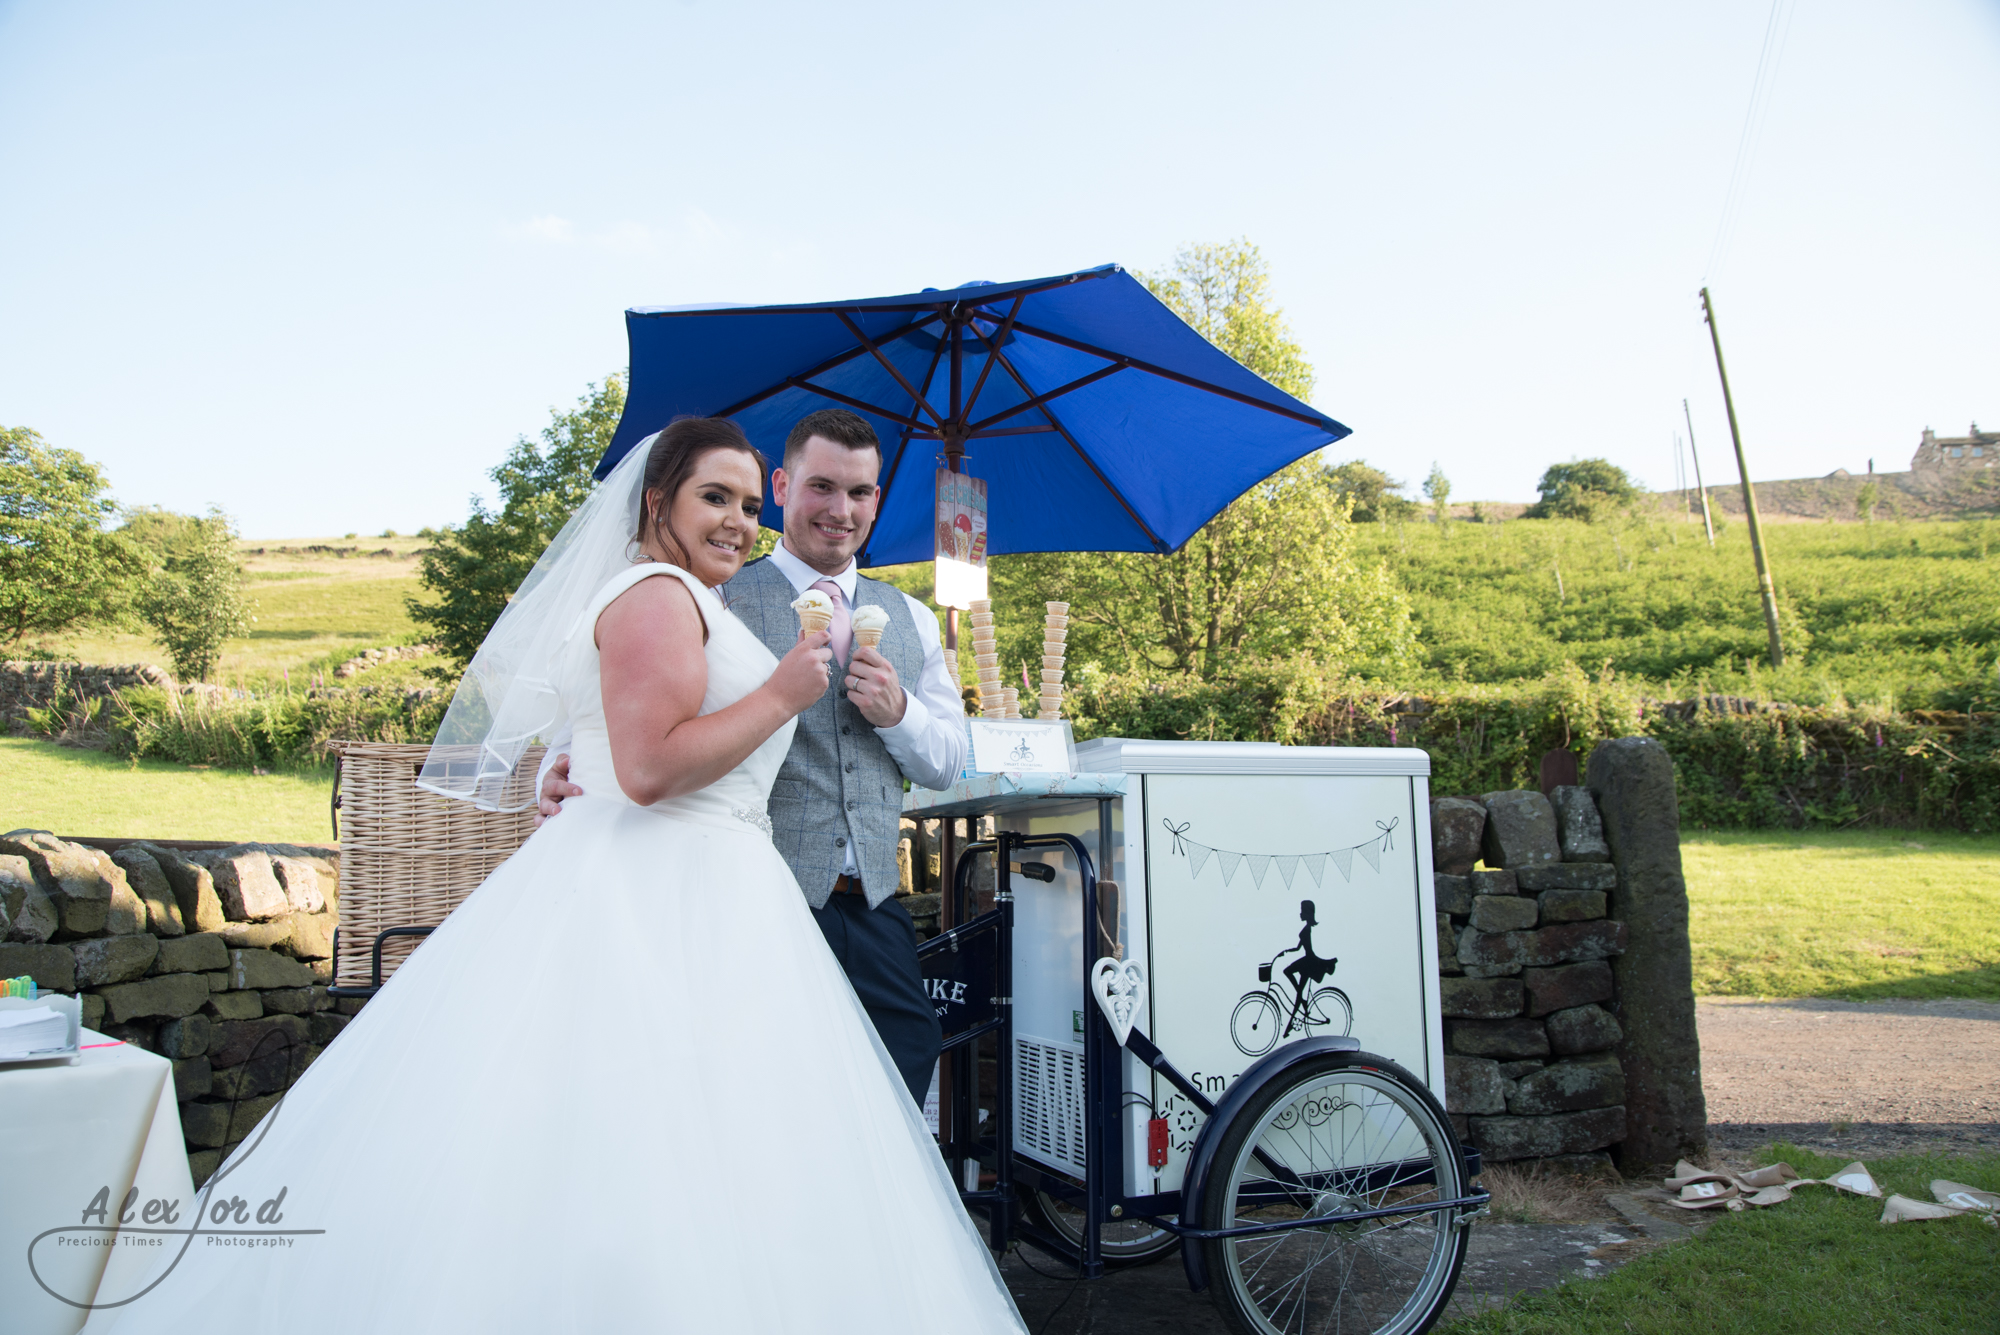 The bride and groom pose with an ice cream in front of their ice cream cart